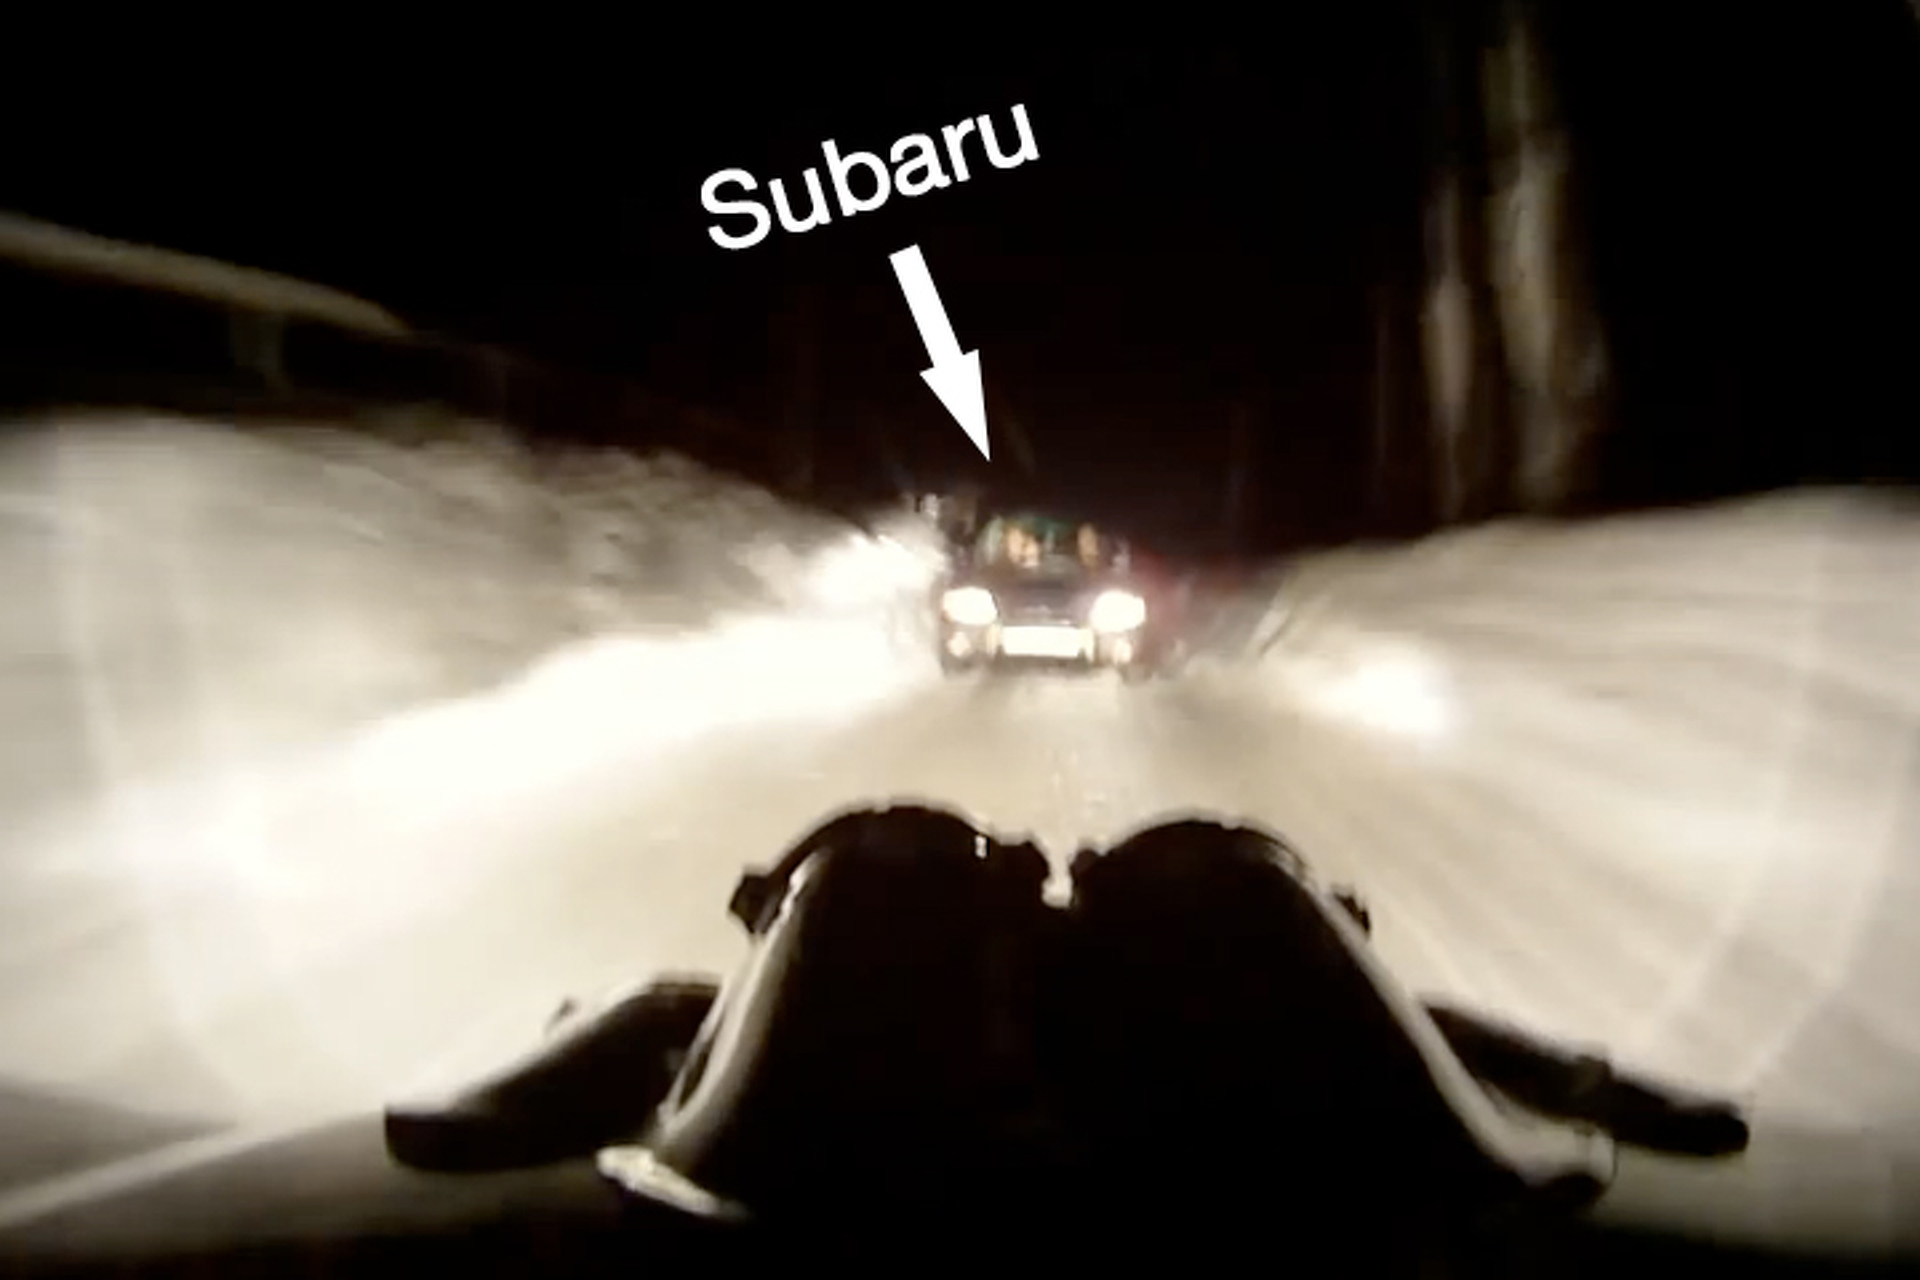 Watch this Rally Driver Encounter Unexpected Traffic